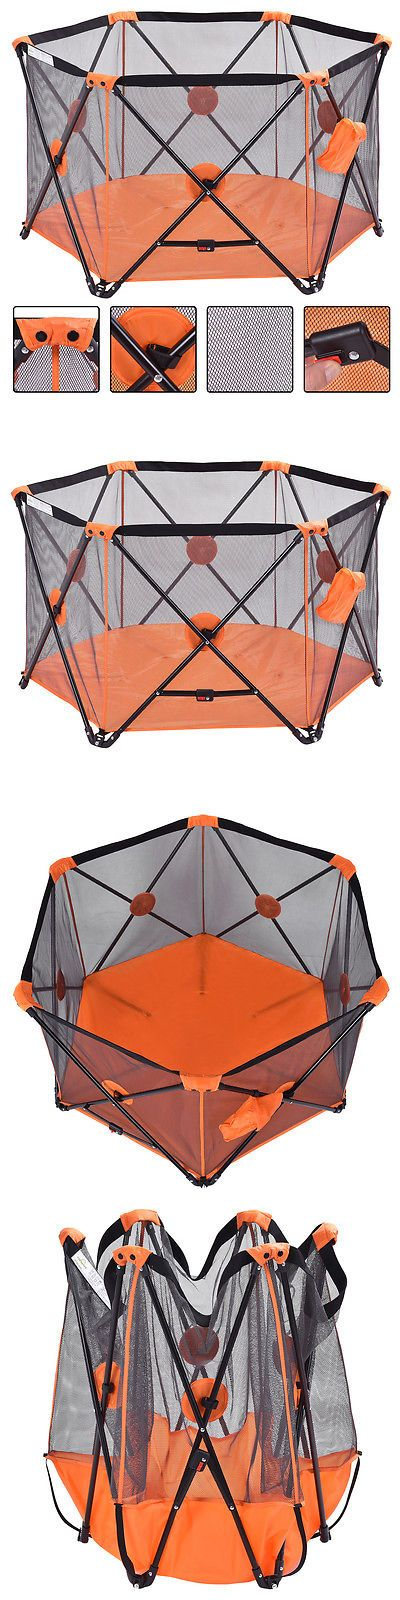 Playpens and Play Yards 2988: Orange Baby Playpen Playard Portable Folding Outdoor Indoor Safety Free Standing -> BUY IT NOW ONLY: $56.99 on eBay!